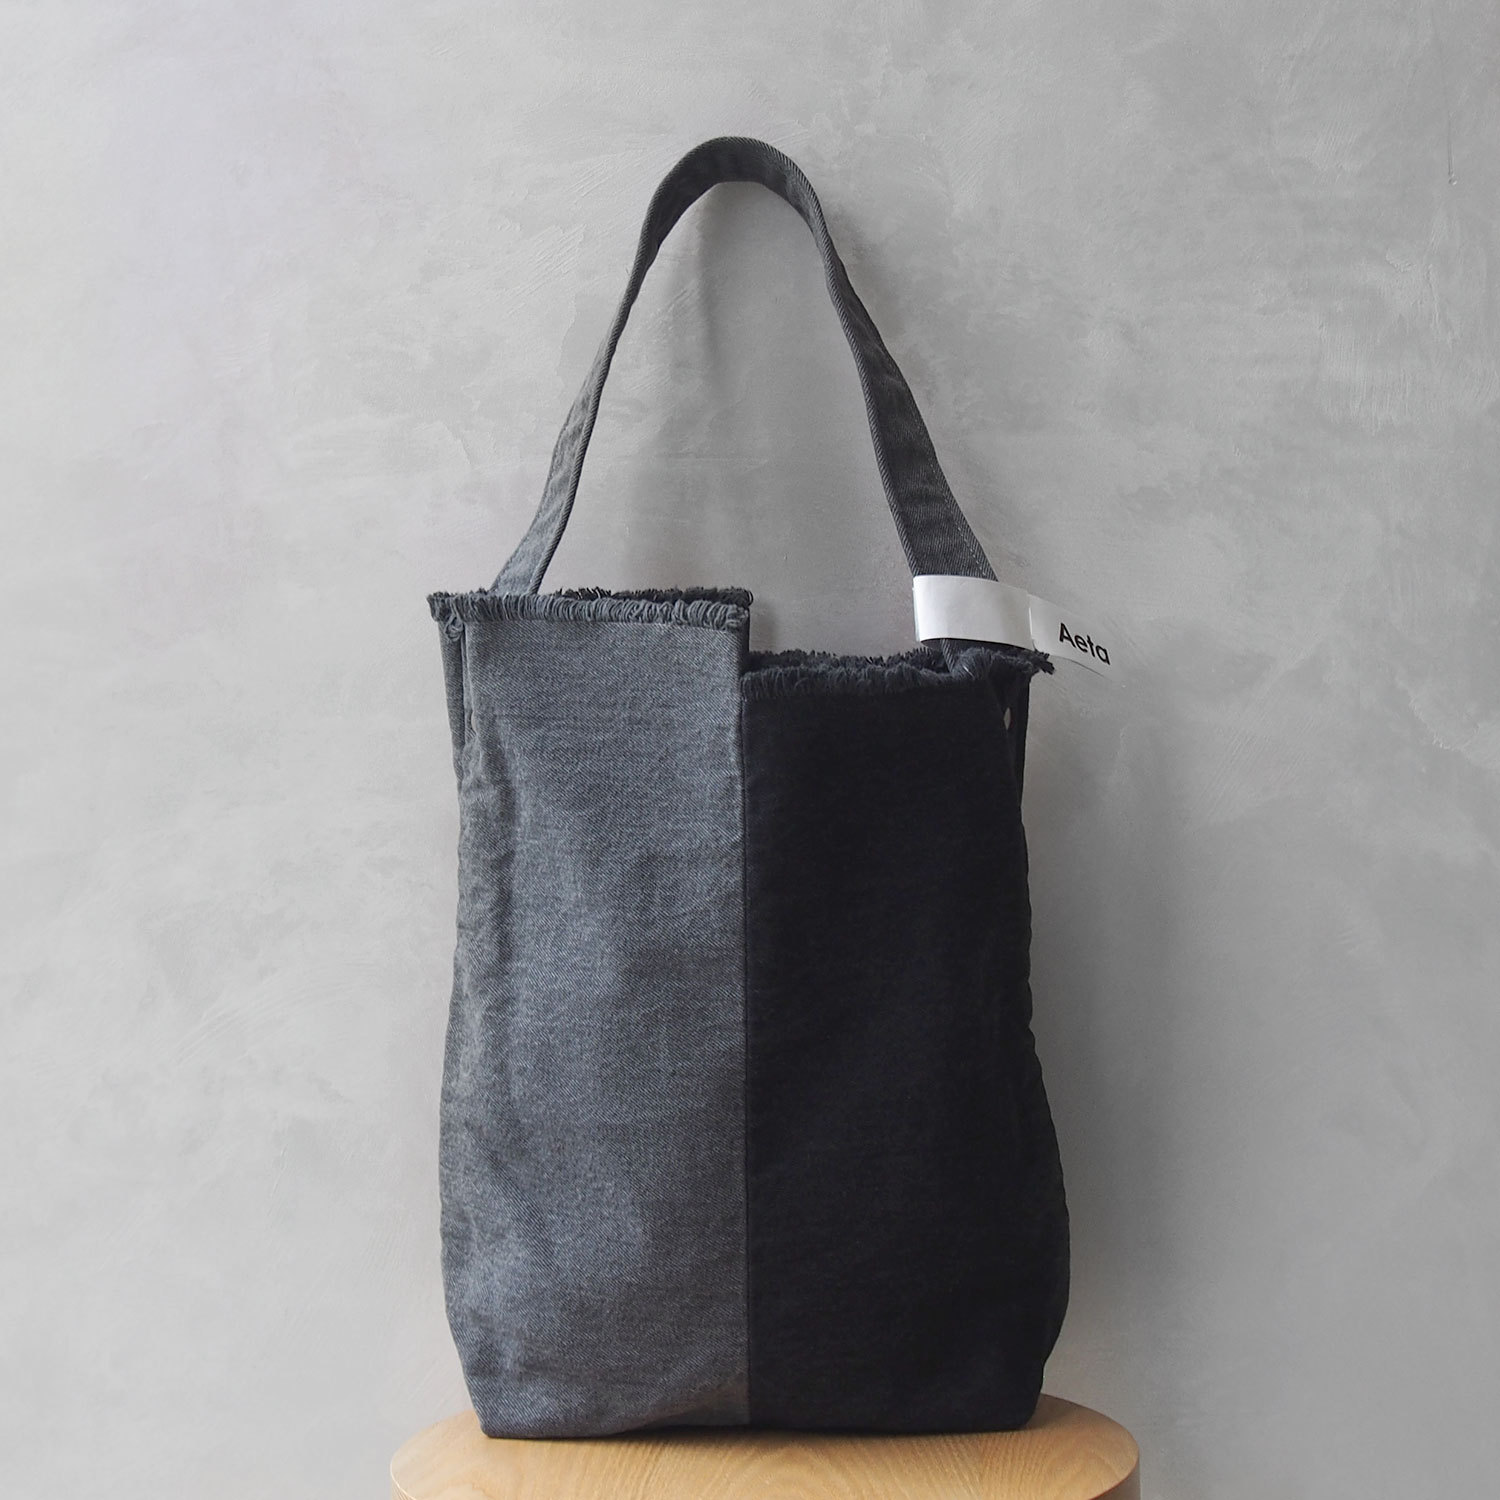 Aeta BD03 SHOULDER S BLACK DENIM